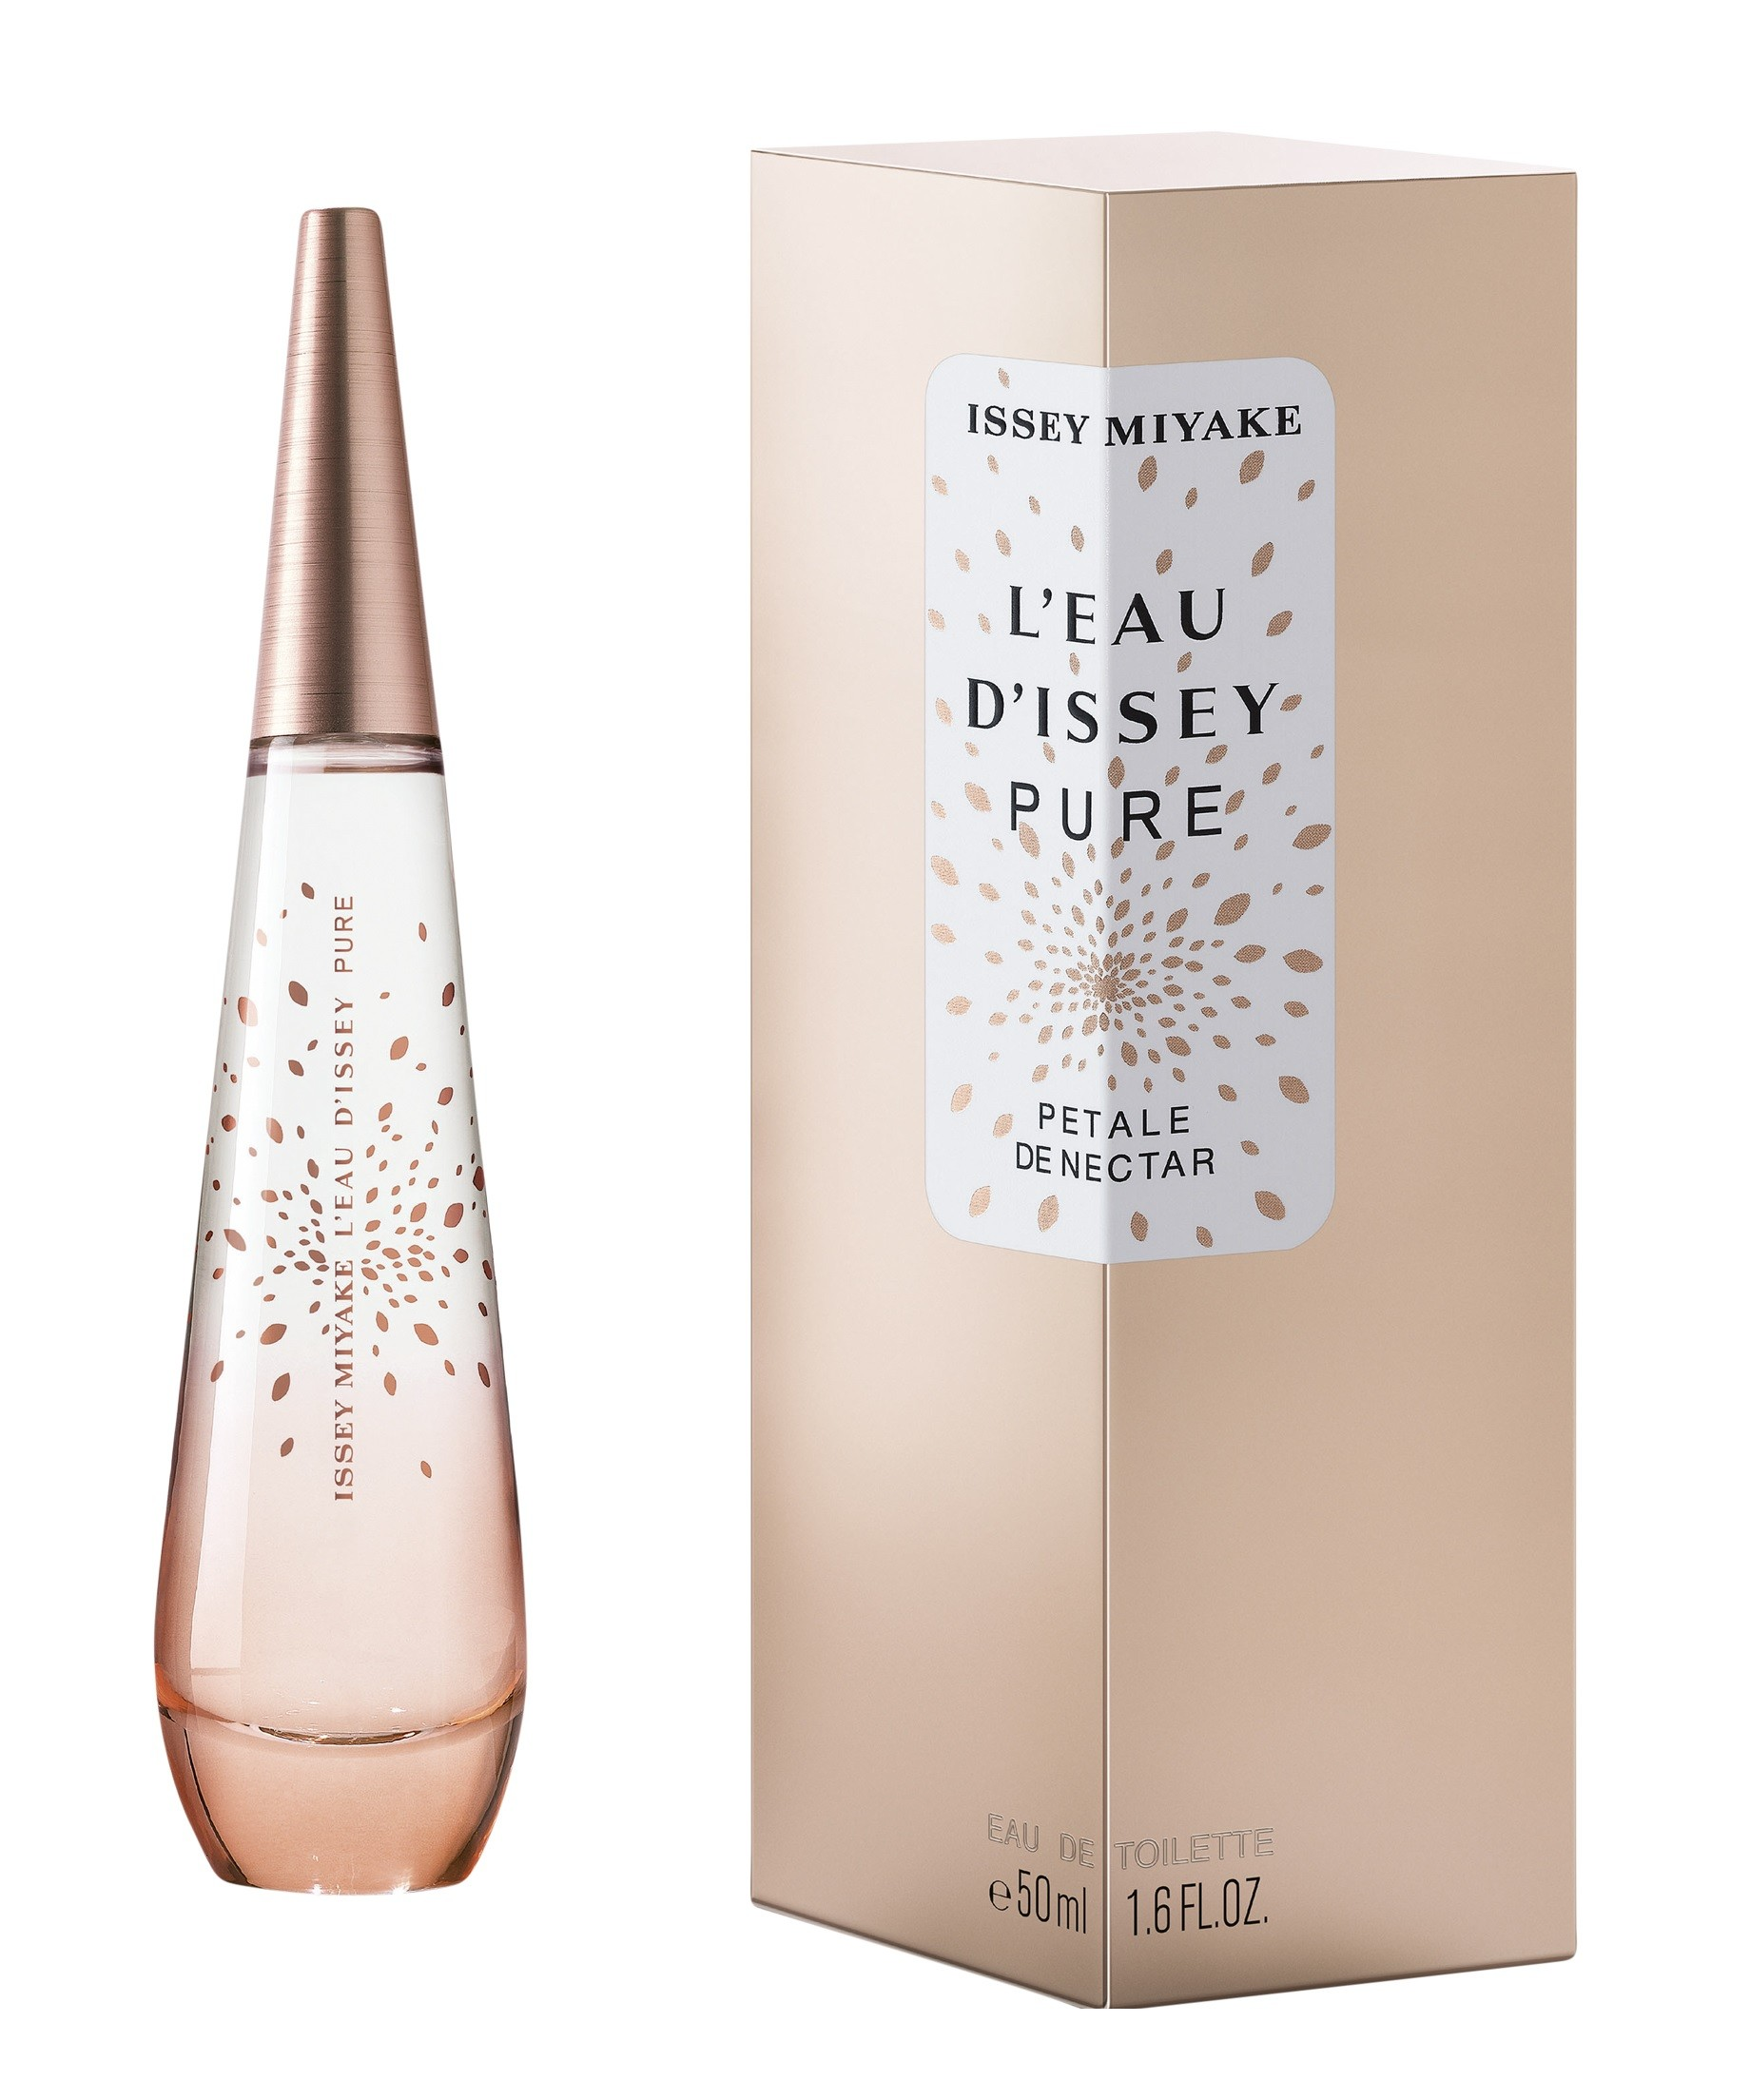 L'eau D'issey Pure Petale de Nectar  By Issey Miyake